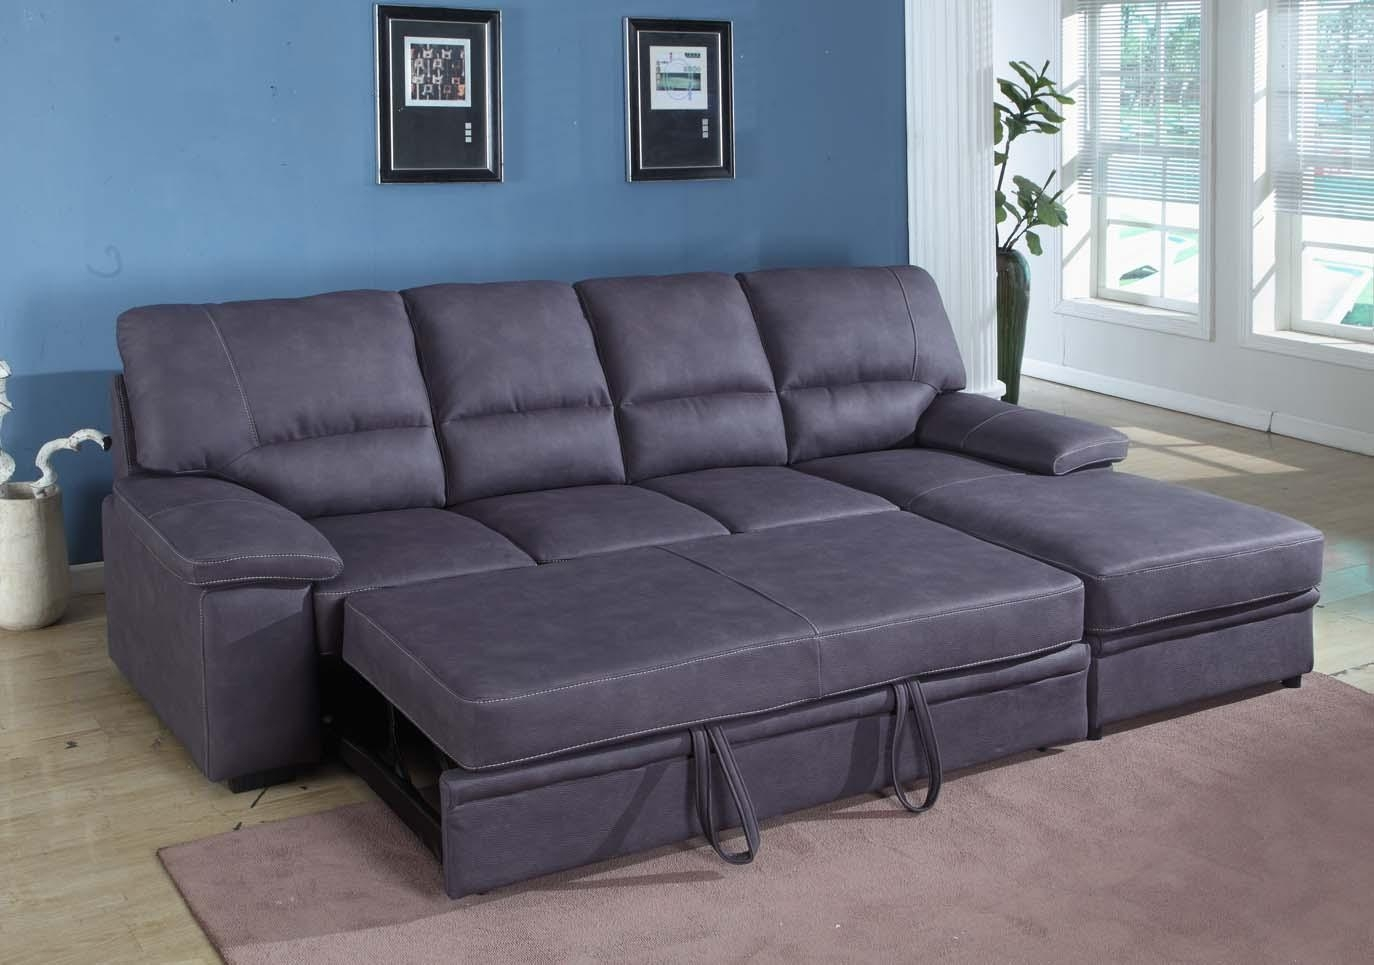 Grey Sleeper Sectional Sofa | Houston Mattress King Inside Sectional Sofas With Sleeper And Chaise (Image 10 of 21)